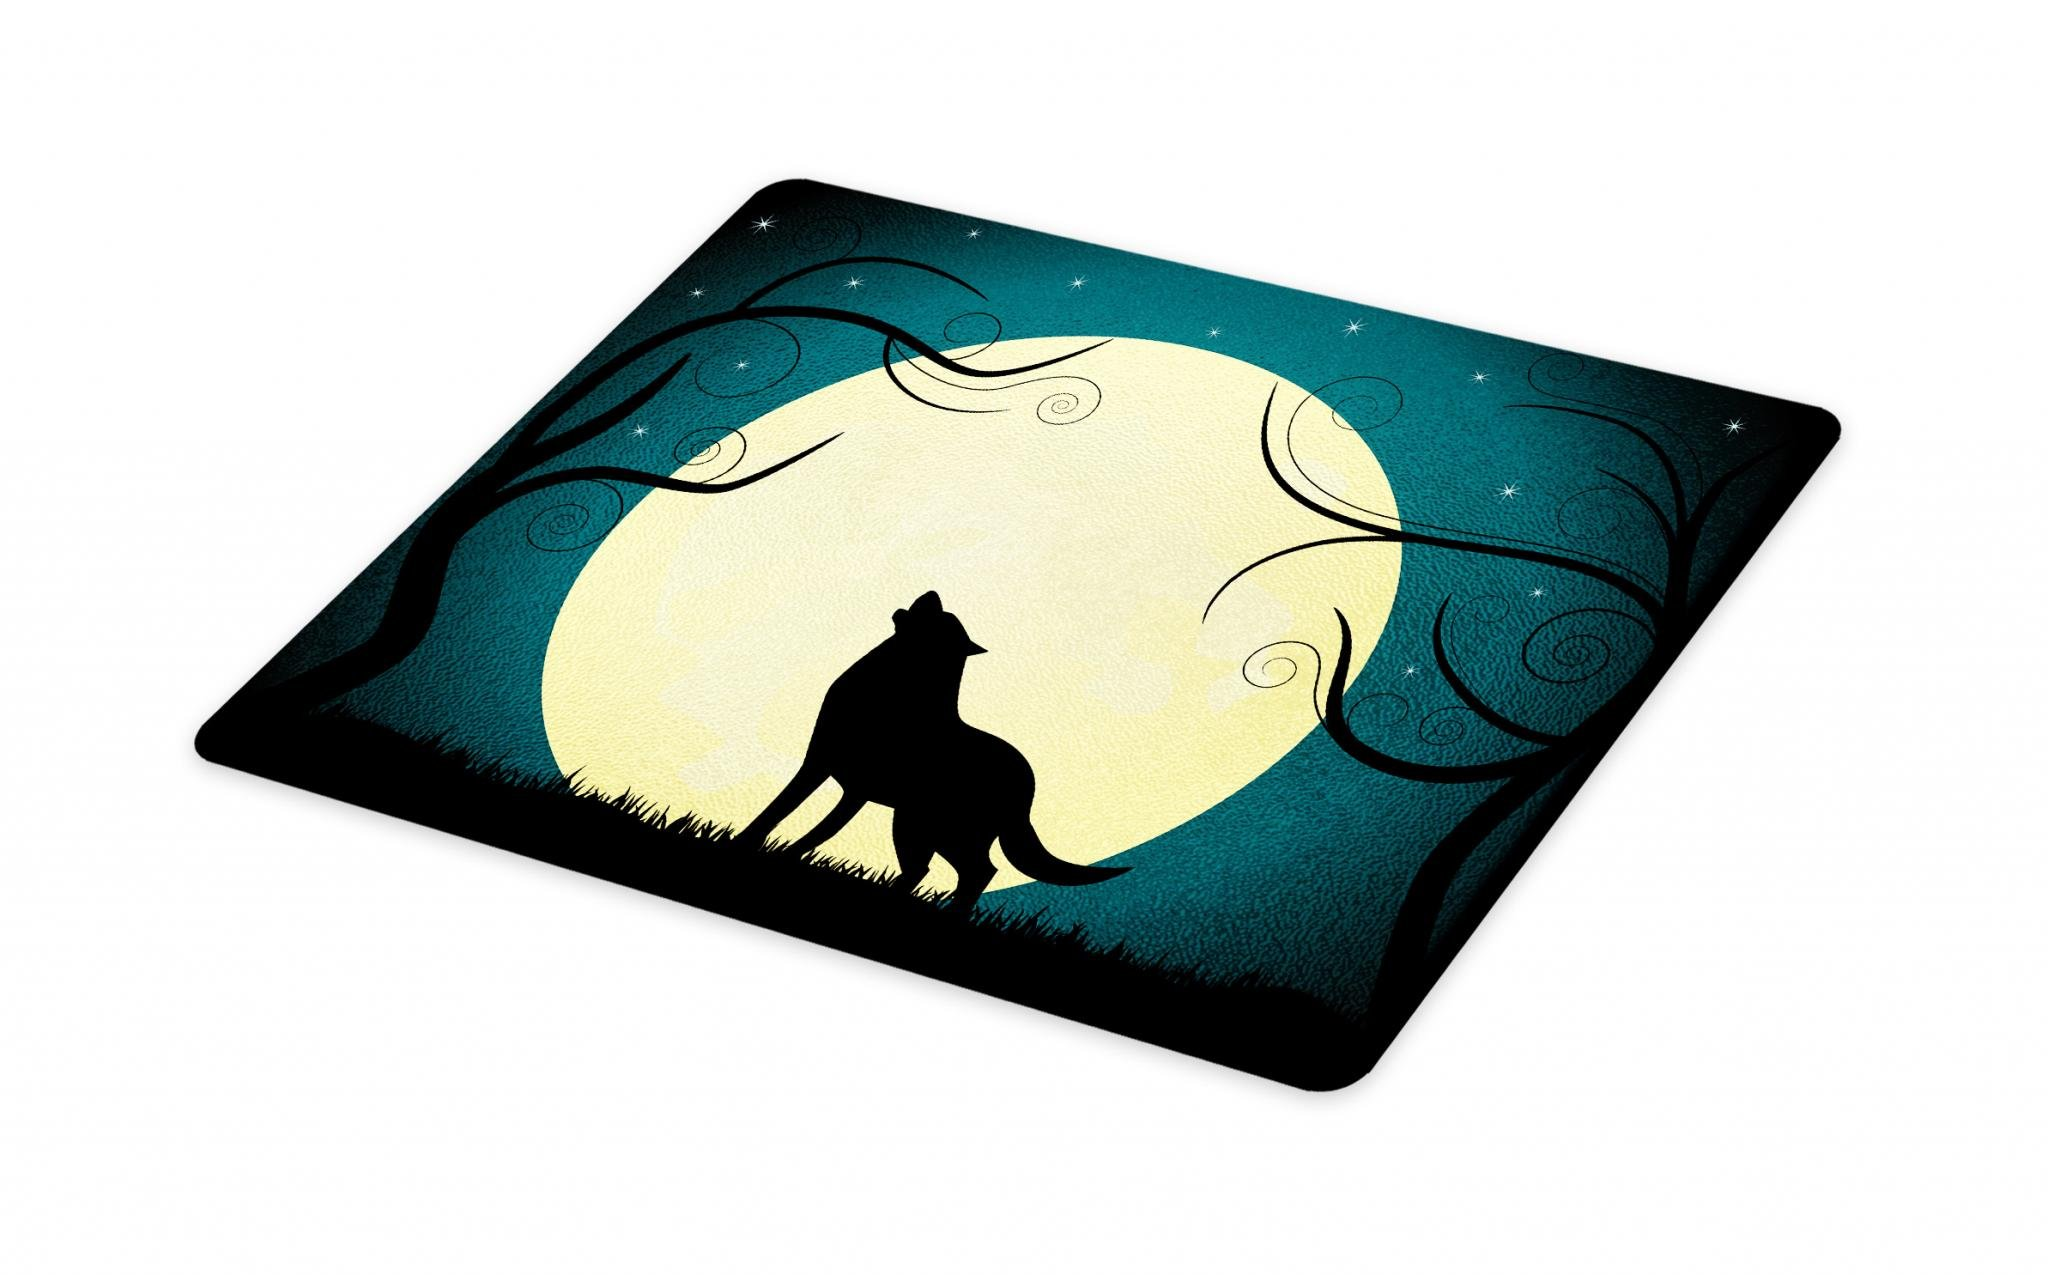 Lunarable Crying Wolf Cutting Board, Animal Barking at the Moon in a Fantastic Forest with Swirled Trees, Decorative Tempered Glass Cutting and Serving Board, Large Size, Teal Cream and Black